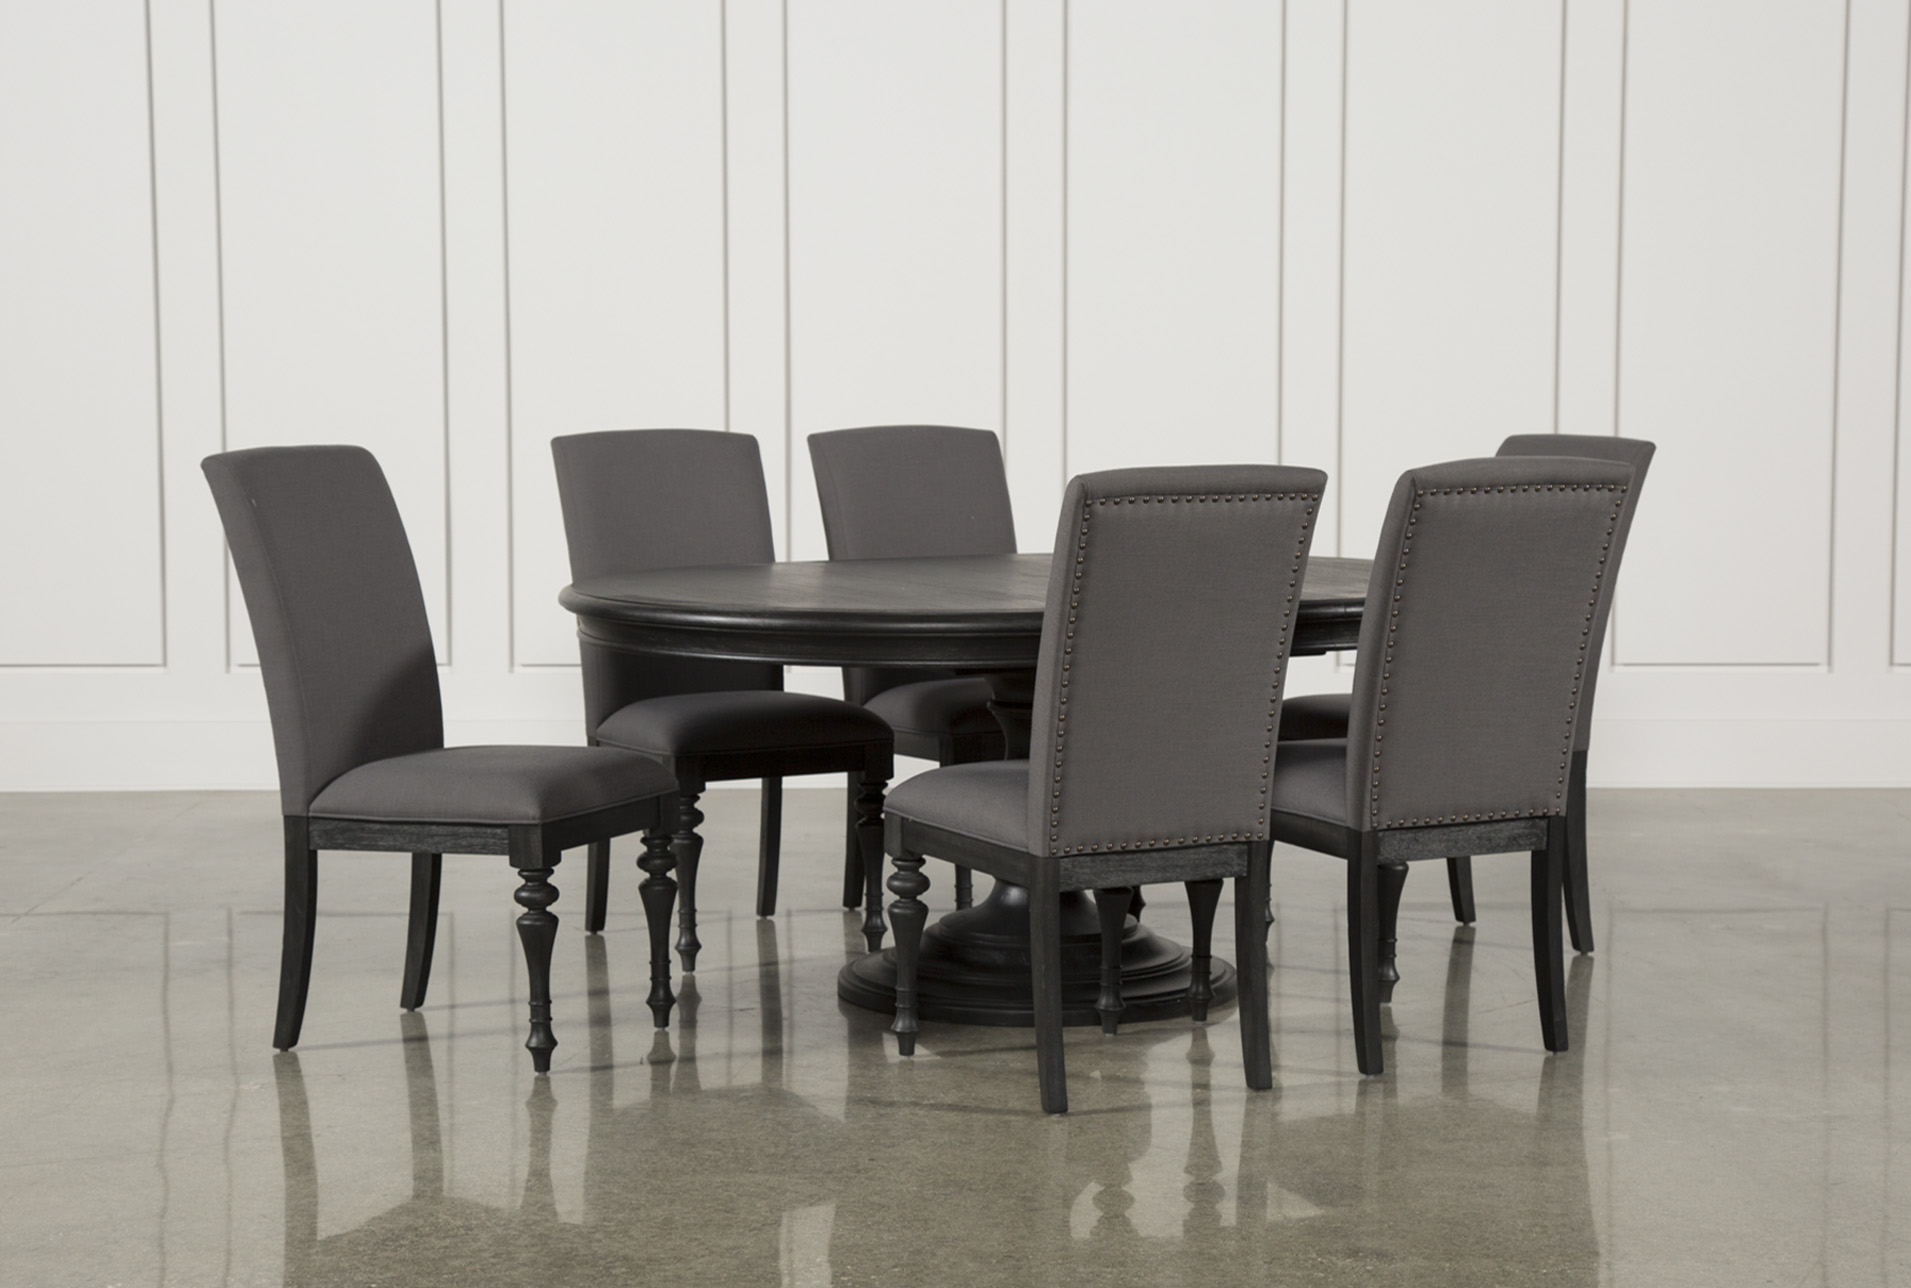 Merveilleux Caira Black 7 Piece Dining Set W/Upholstered Side Chairs   360